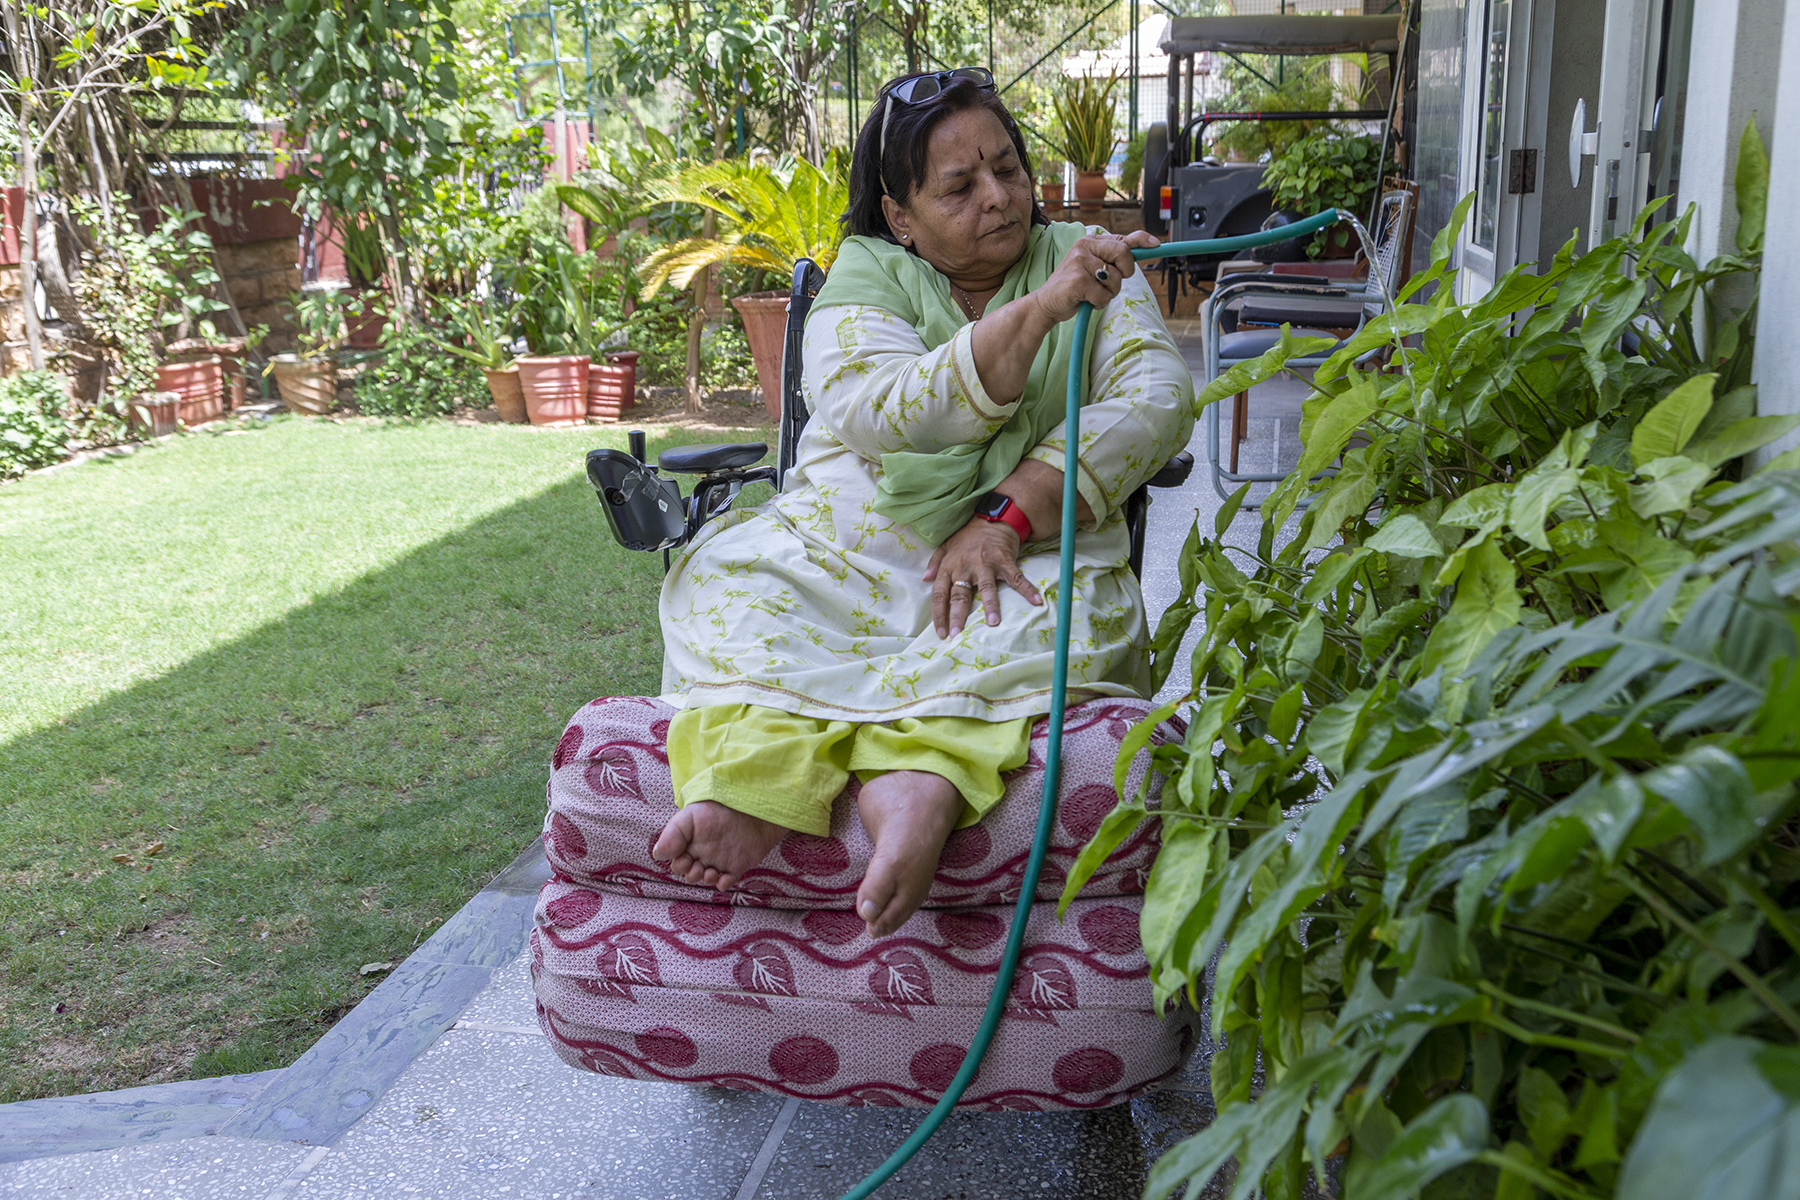 Kusumlata sits in her wheelchair, wearing a pale green salwar kameez and pista green dupatta, watering the leaves of a row of potted plants to the right, using a dark green rubber hosepipe. To the left is a green patch of lawn bordered by potted plants.